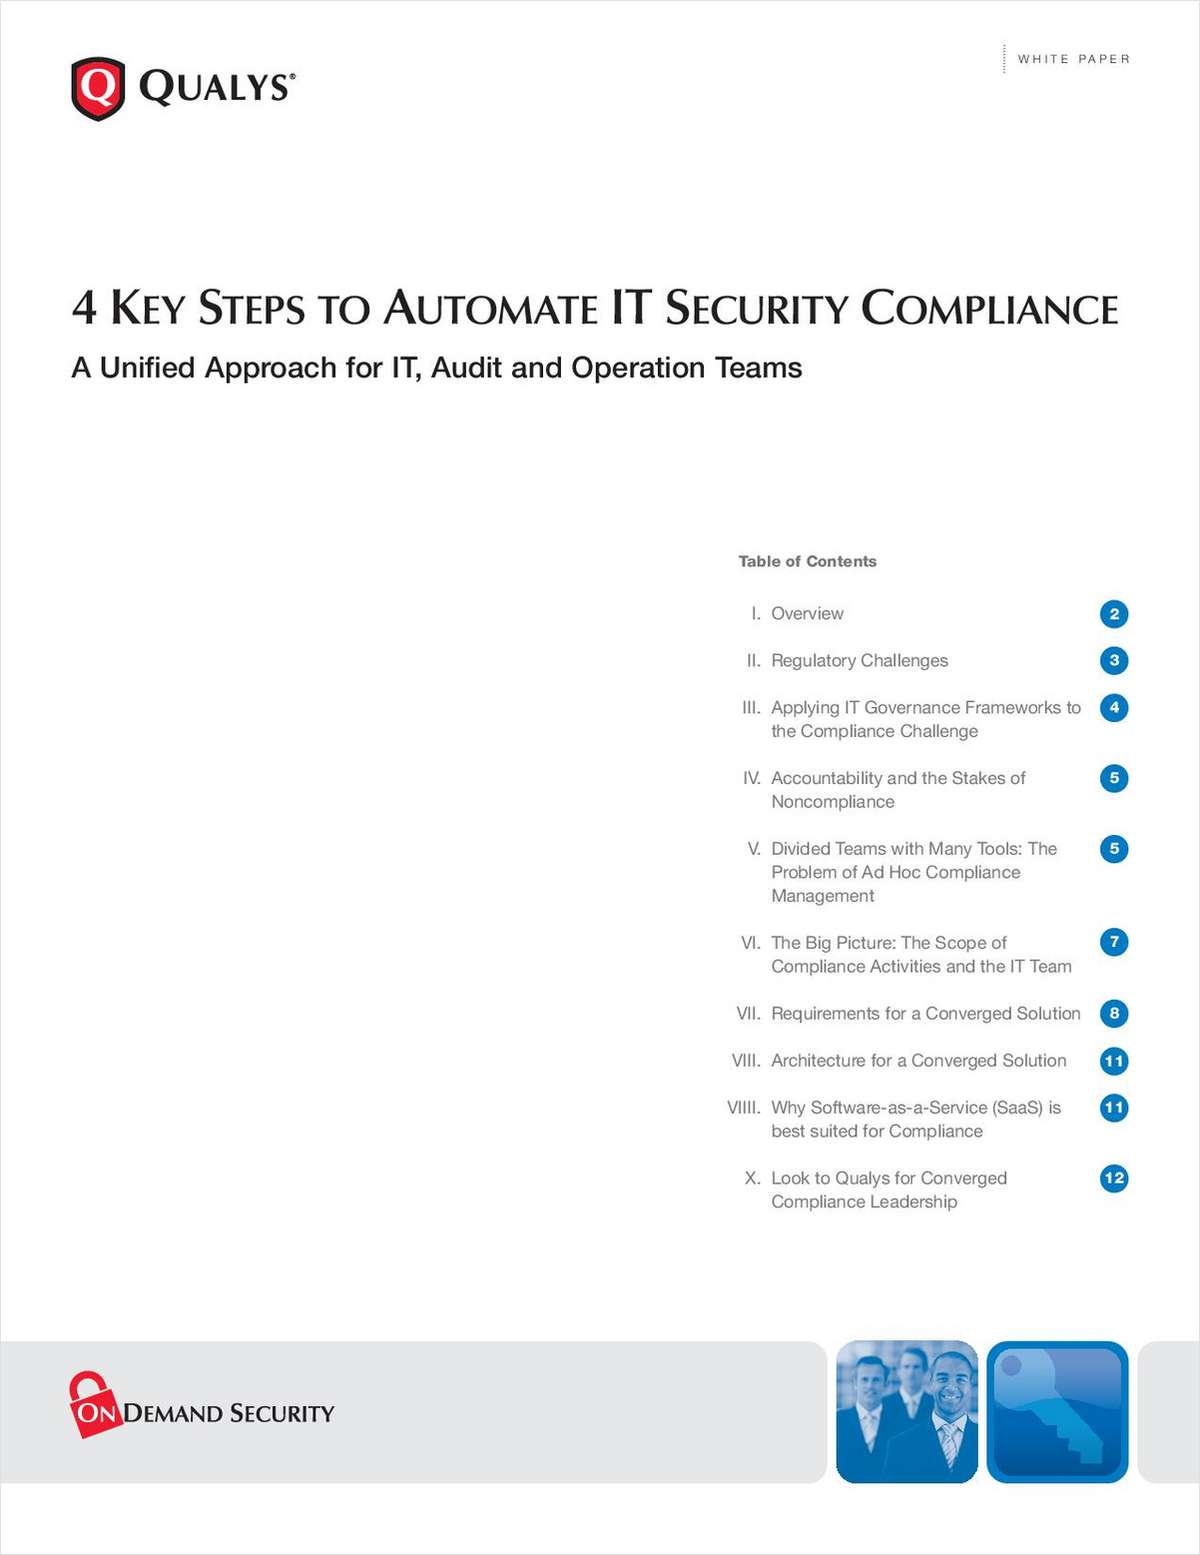 4 Key Steps to Automate IT Security Compliance